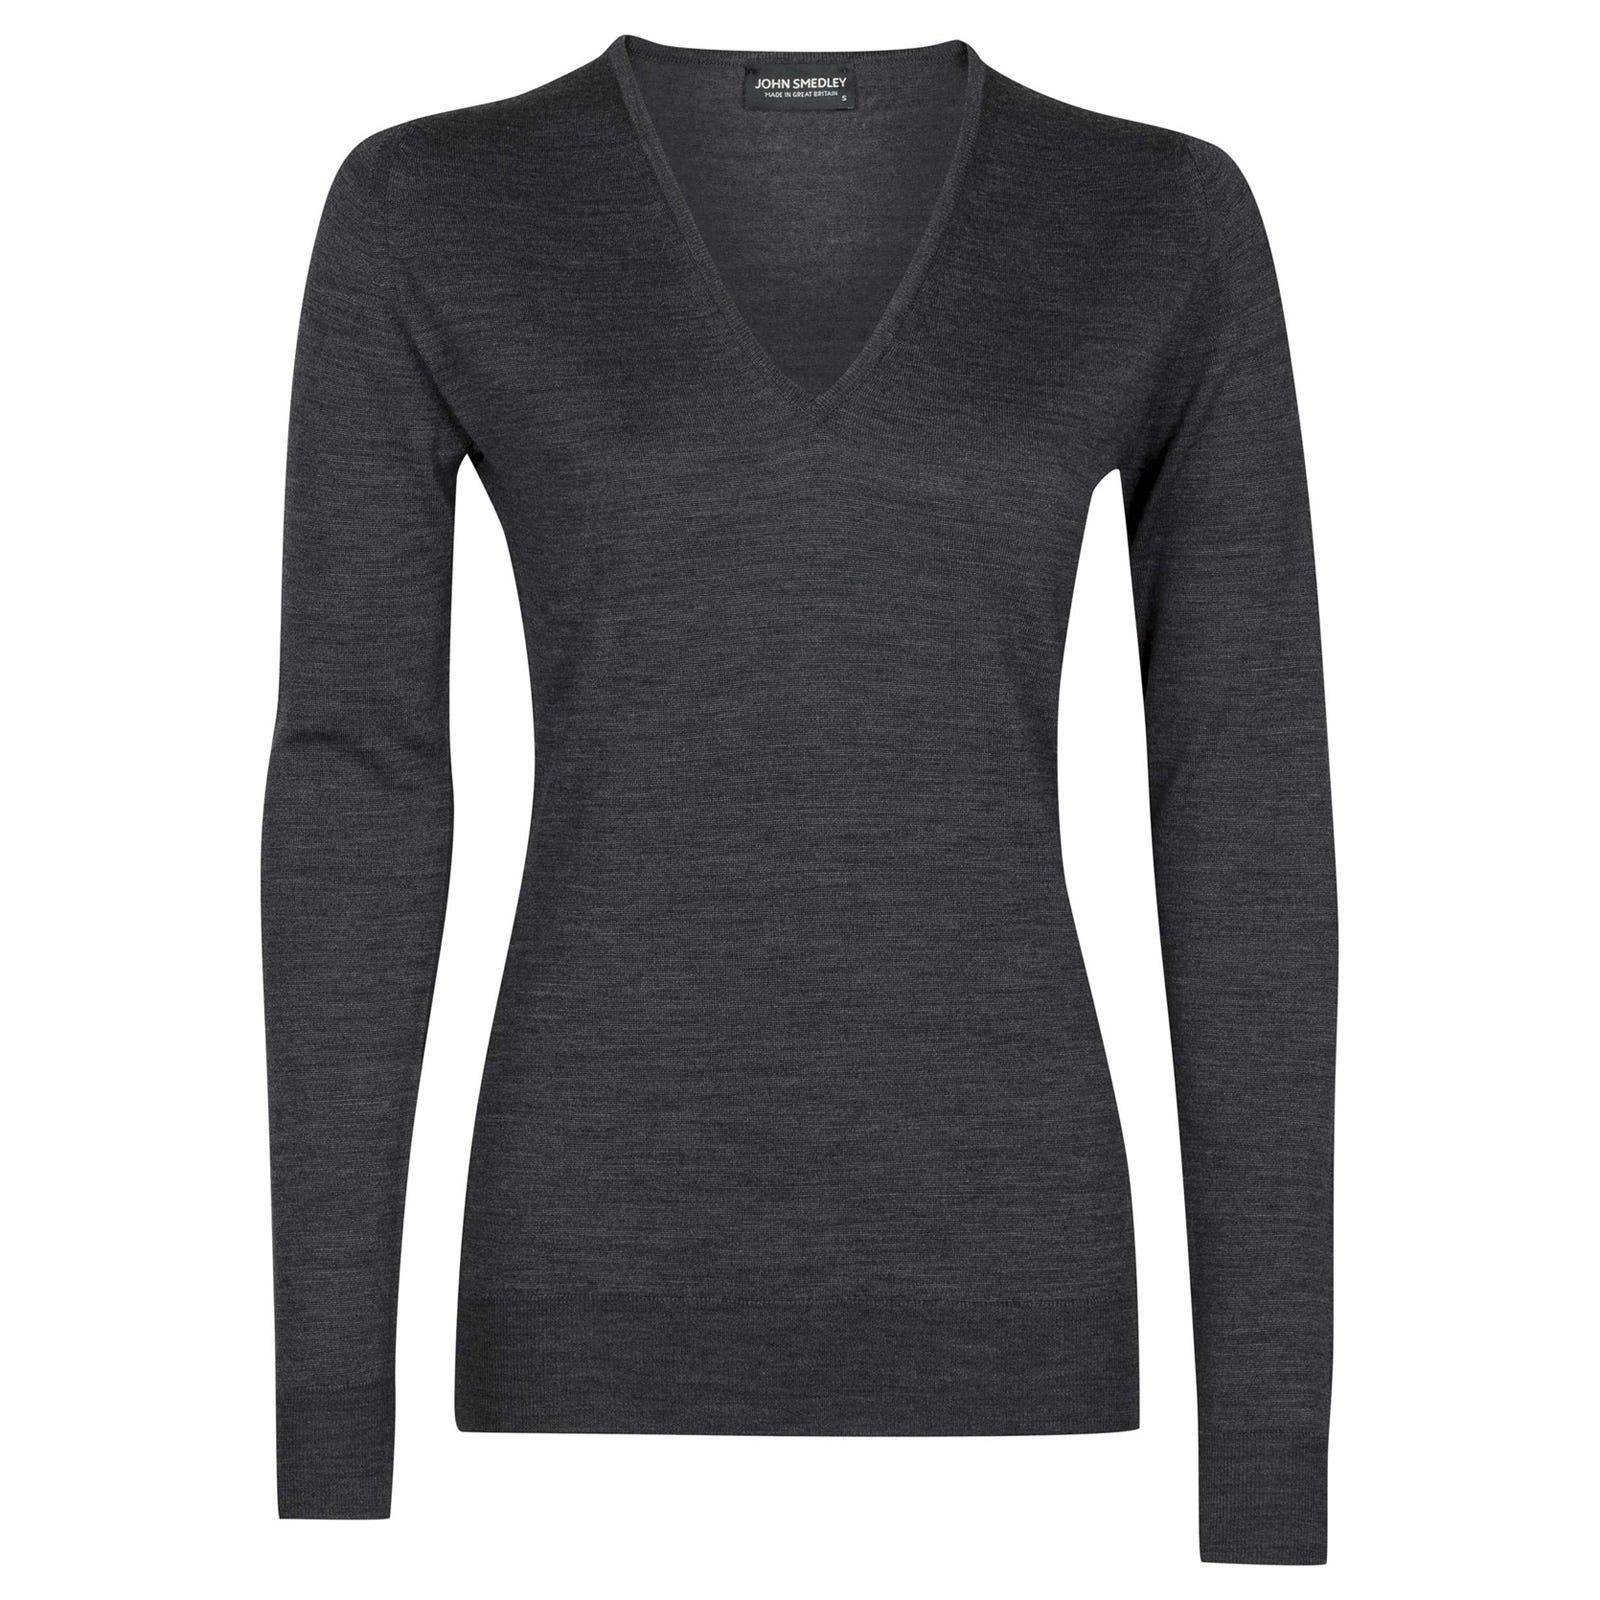 John Smedley orchid Merino Wool Sweater in Charcoal-S